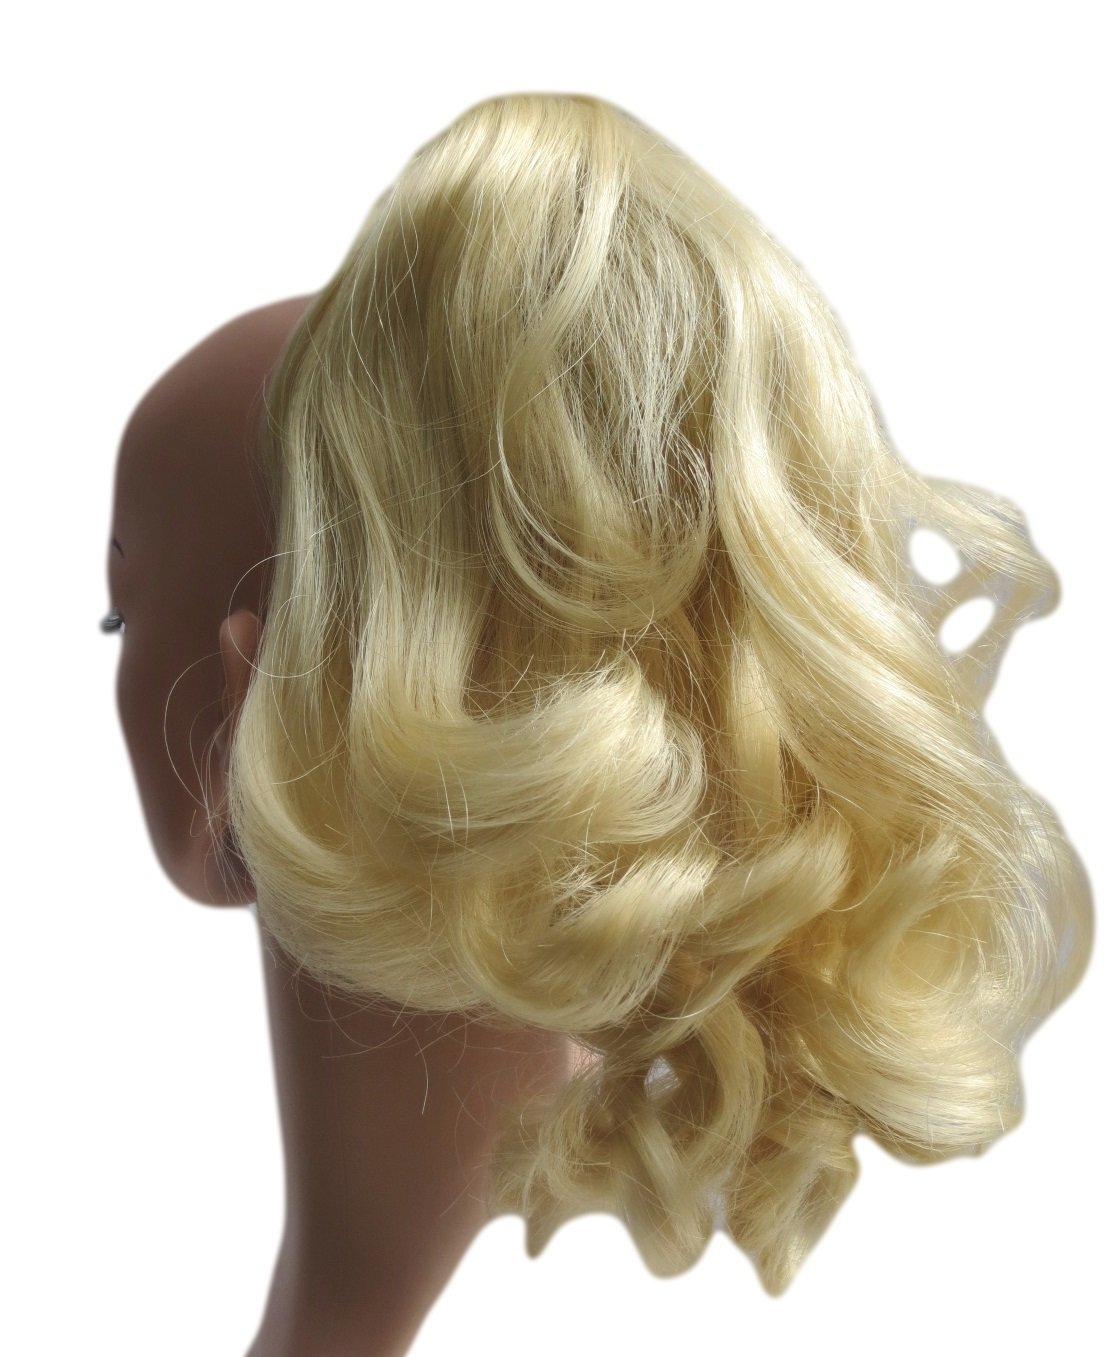 SWEET SHORT CURLY PONY TAIL HAIR EXTENSION, (CLAW GRIP) (01 Jet Black) Vanessa Grey Hair Designs P178 SHORT